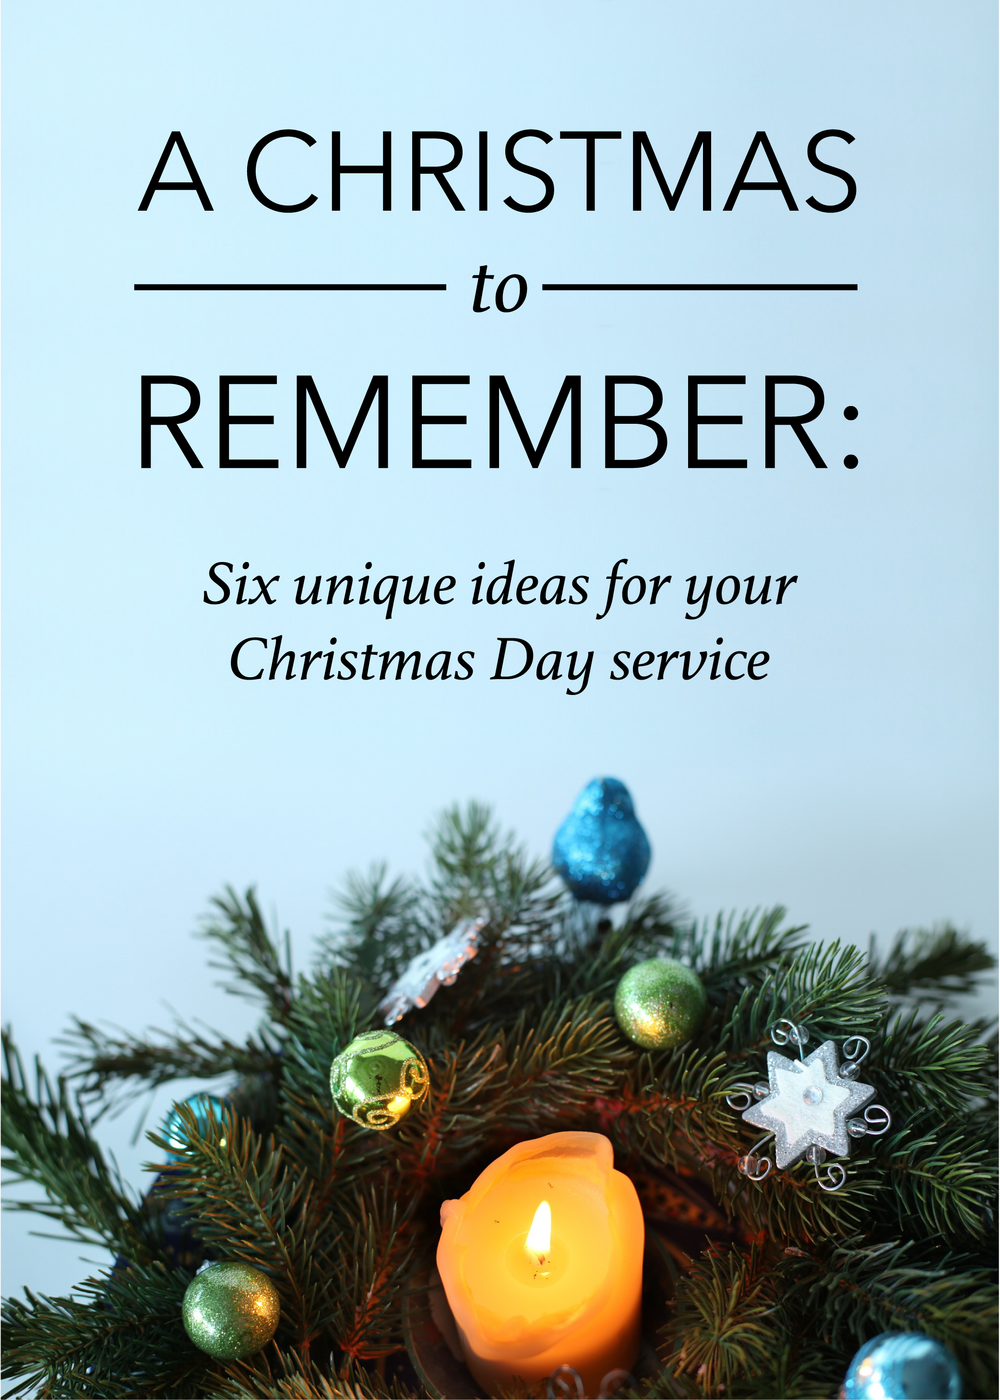 Copy of A Christmas to Remember: Six Unique Ideas for Your Christmas Day Service